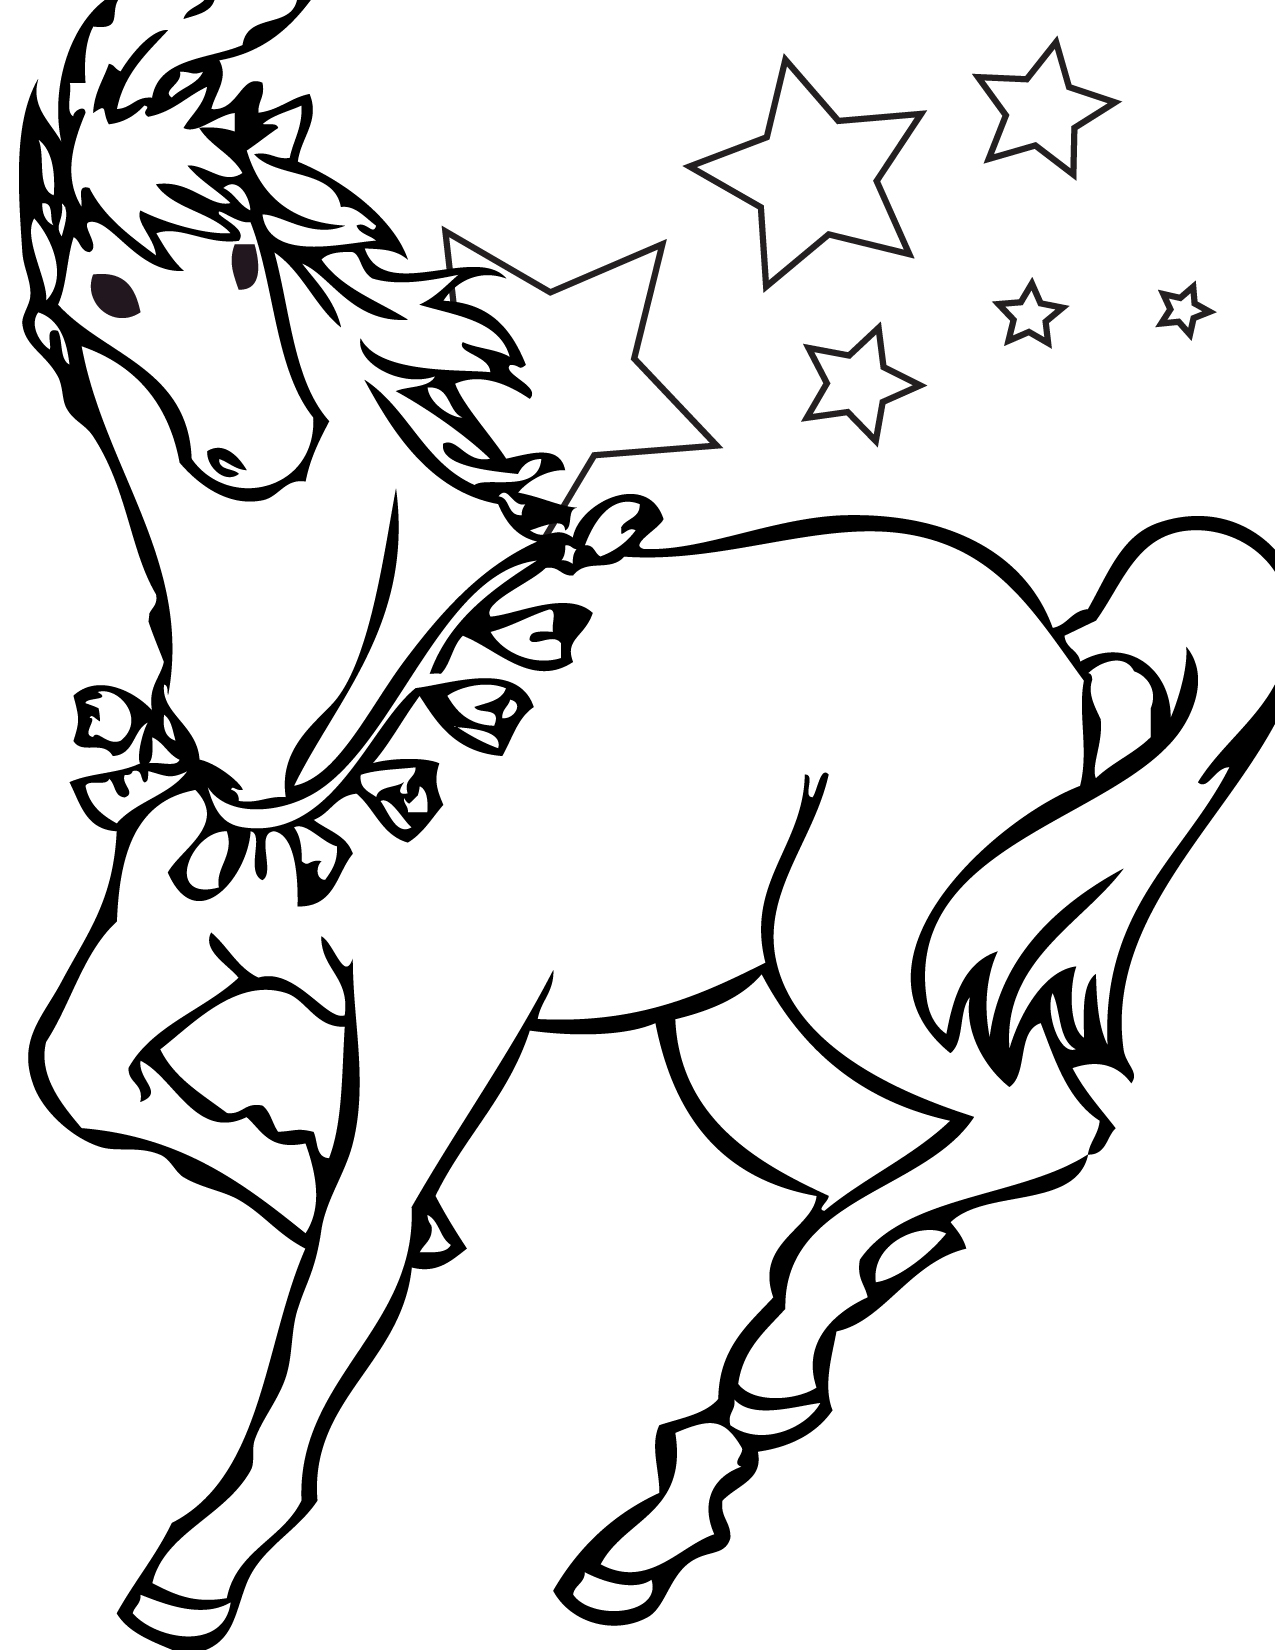 horses to color fun horse coloring pages for your kids printable to color horses 1 1